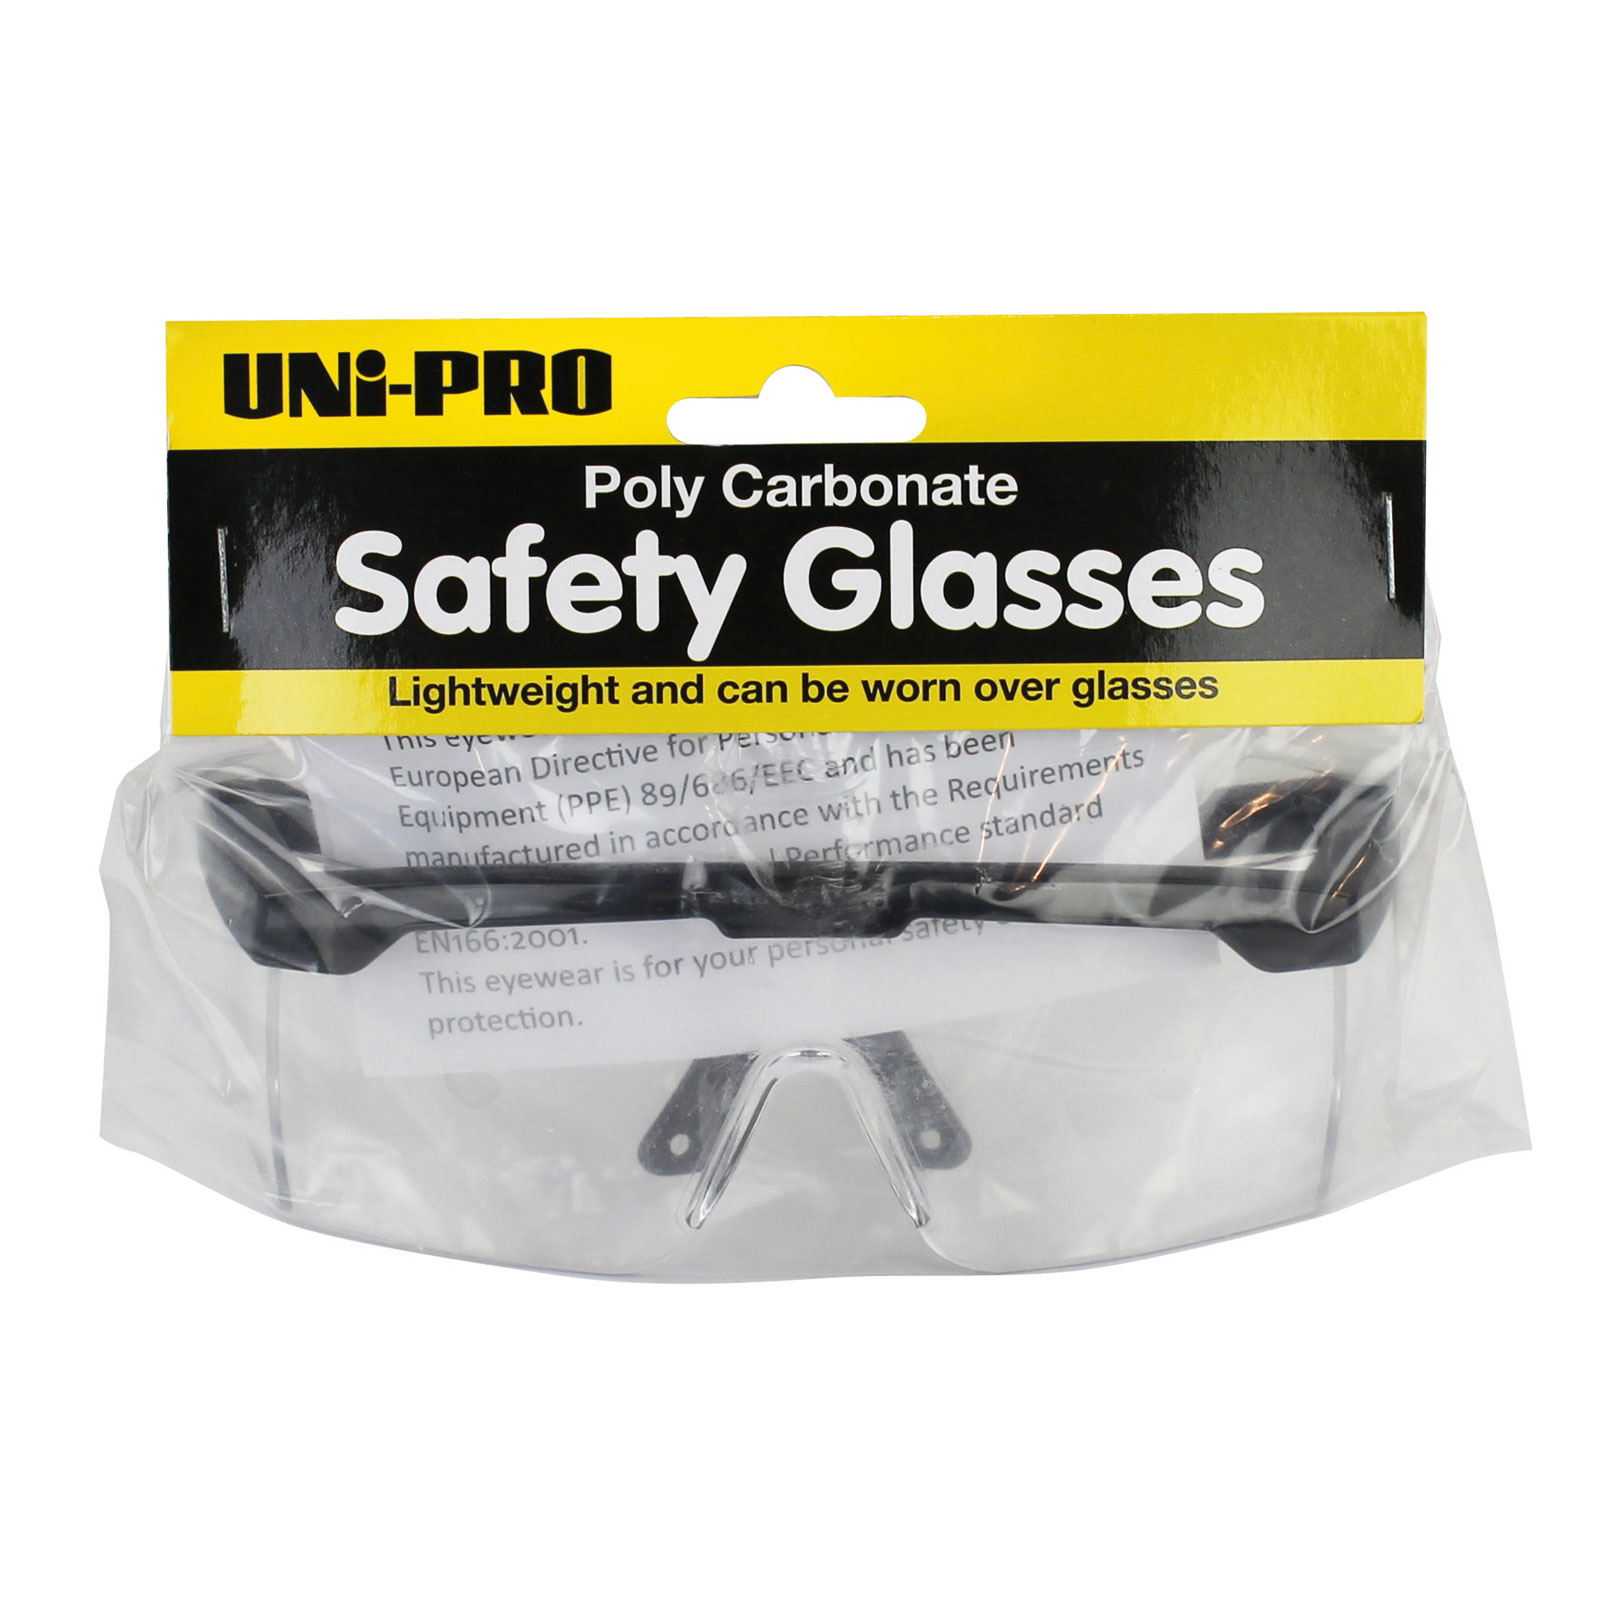 Uni Pro Safety Glasses Unipro